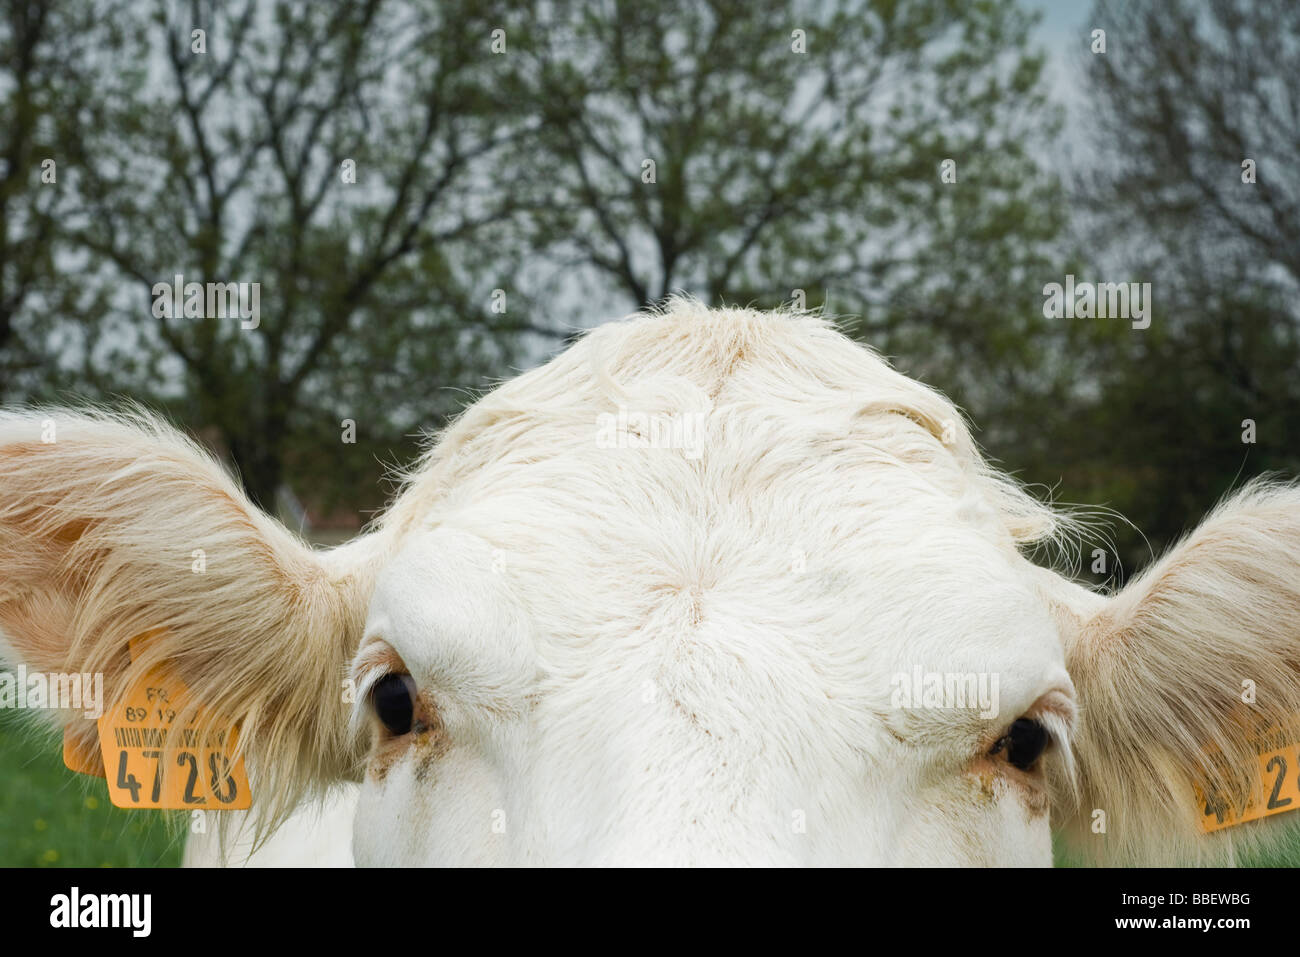 White cow looking at camera, extreme close-up - Stock Image